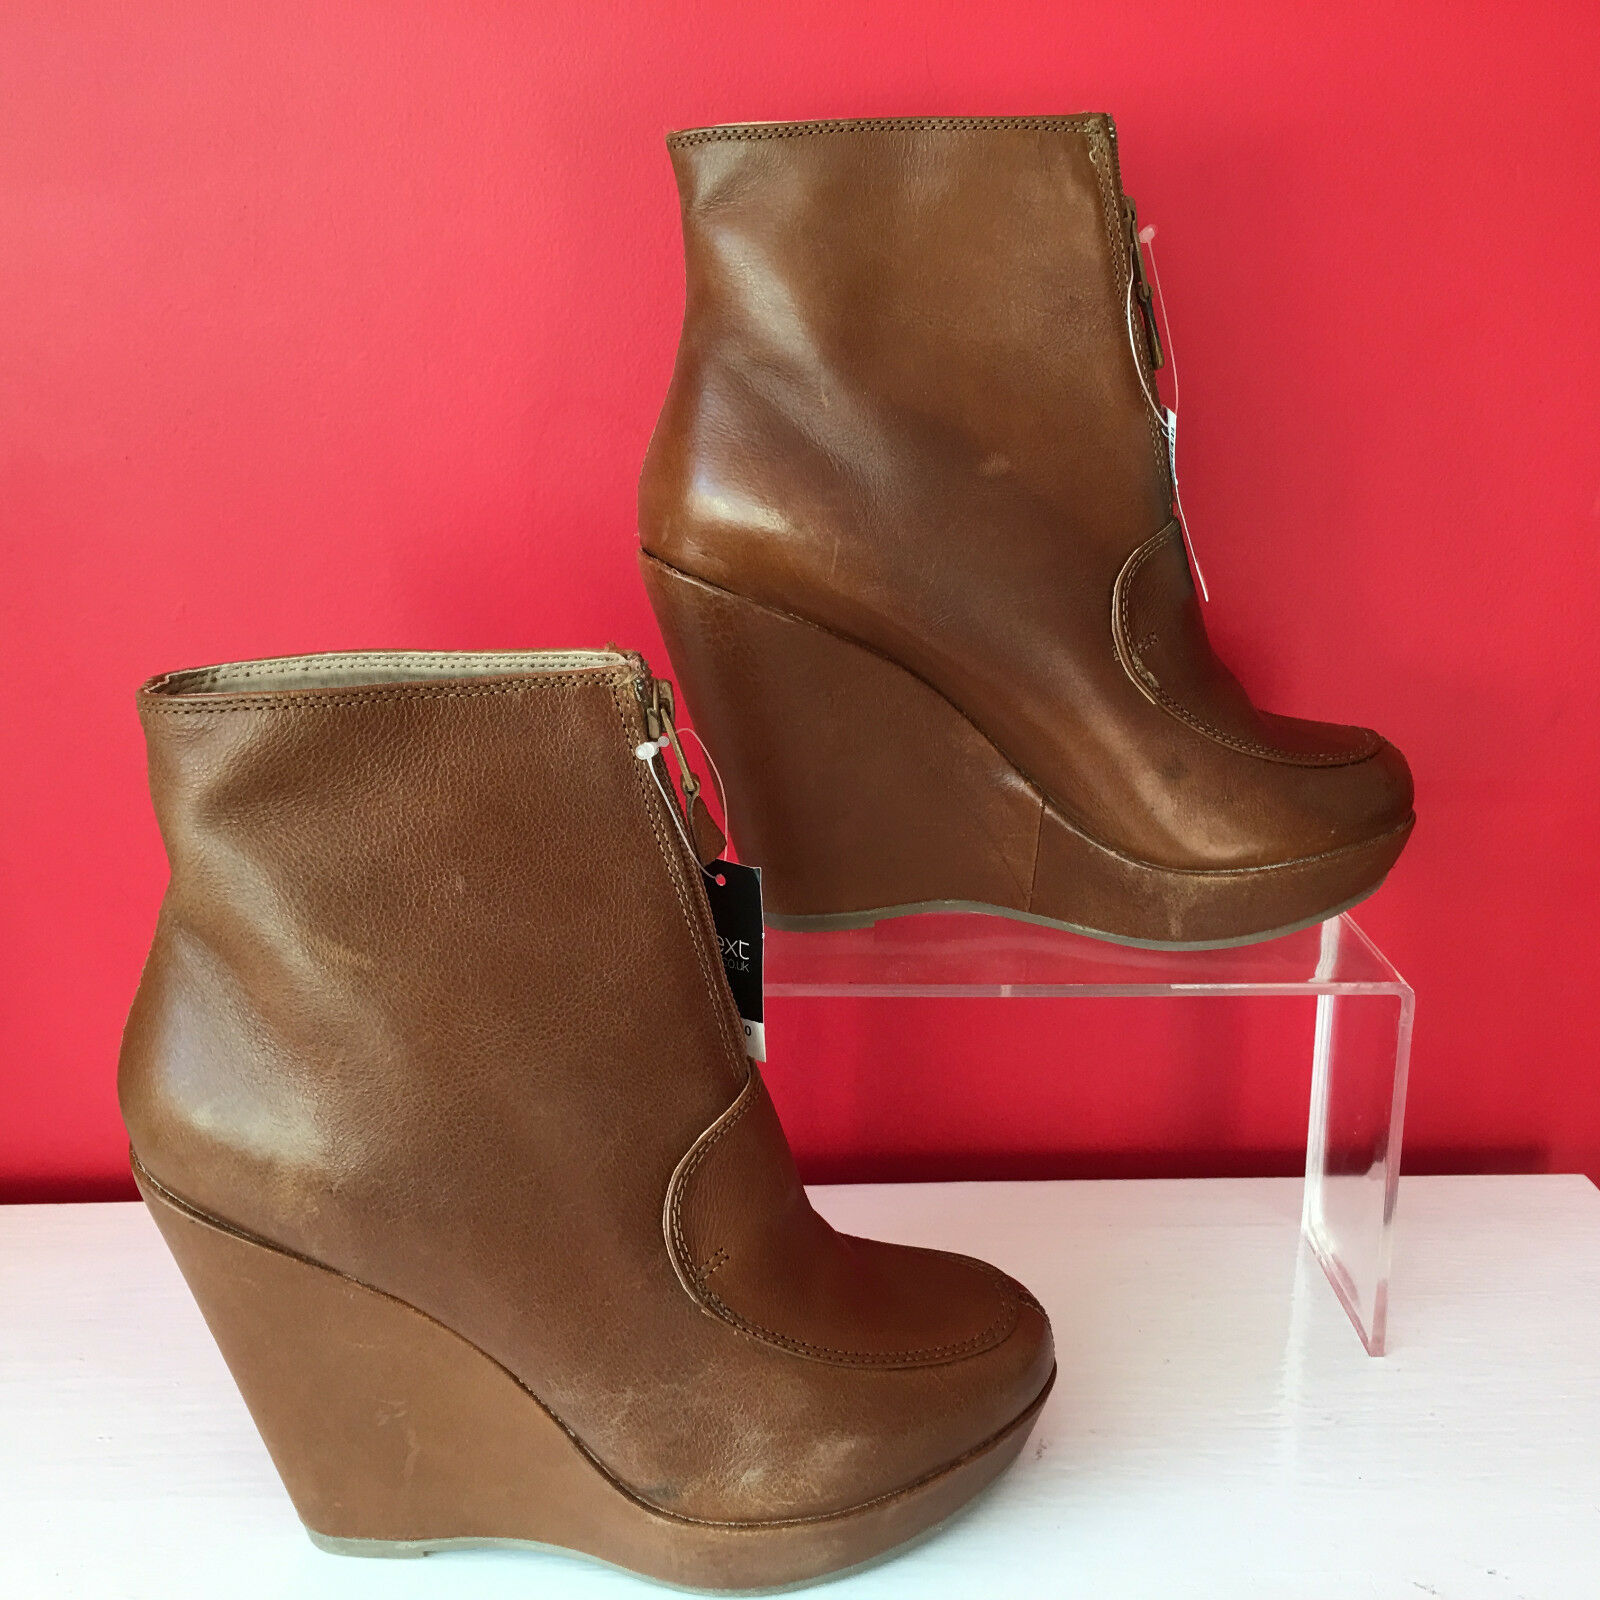 BNWT Next Camel Tan Leather Wedge Heel Ankle Stiefel Front Zip schuhe EU39 UK 6